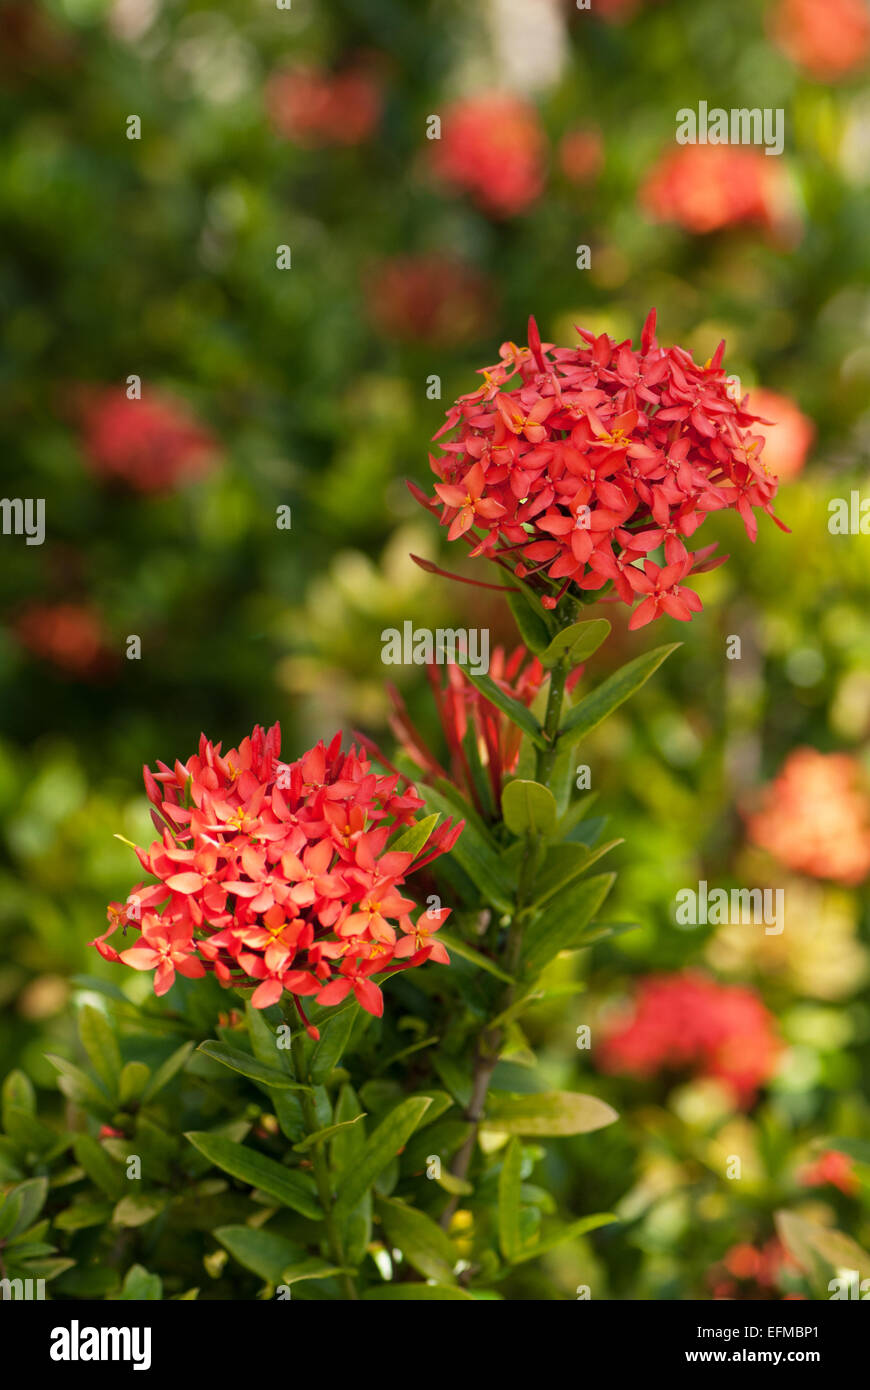 Buy Ixora In Orlando Florida Lake Mary Kissimmee Sanford: The Jungle Flame, Ixora Coccinea, Also Known As The 'Flame